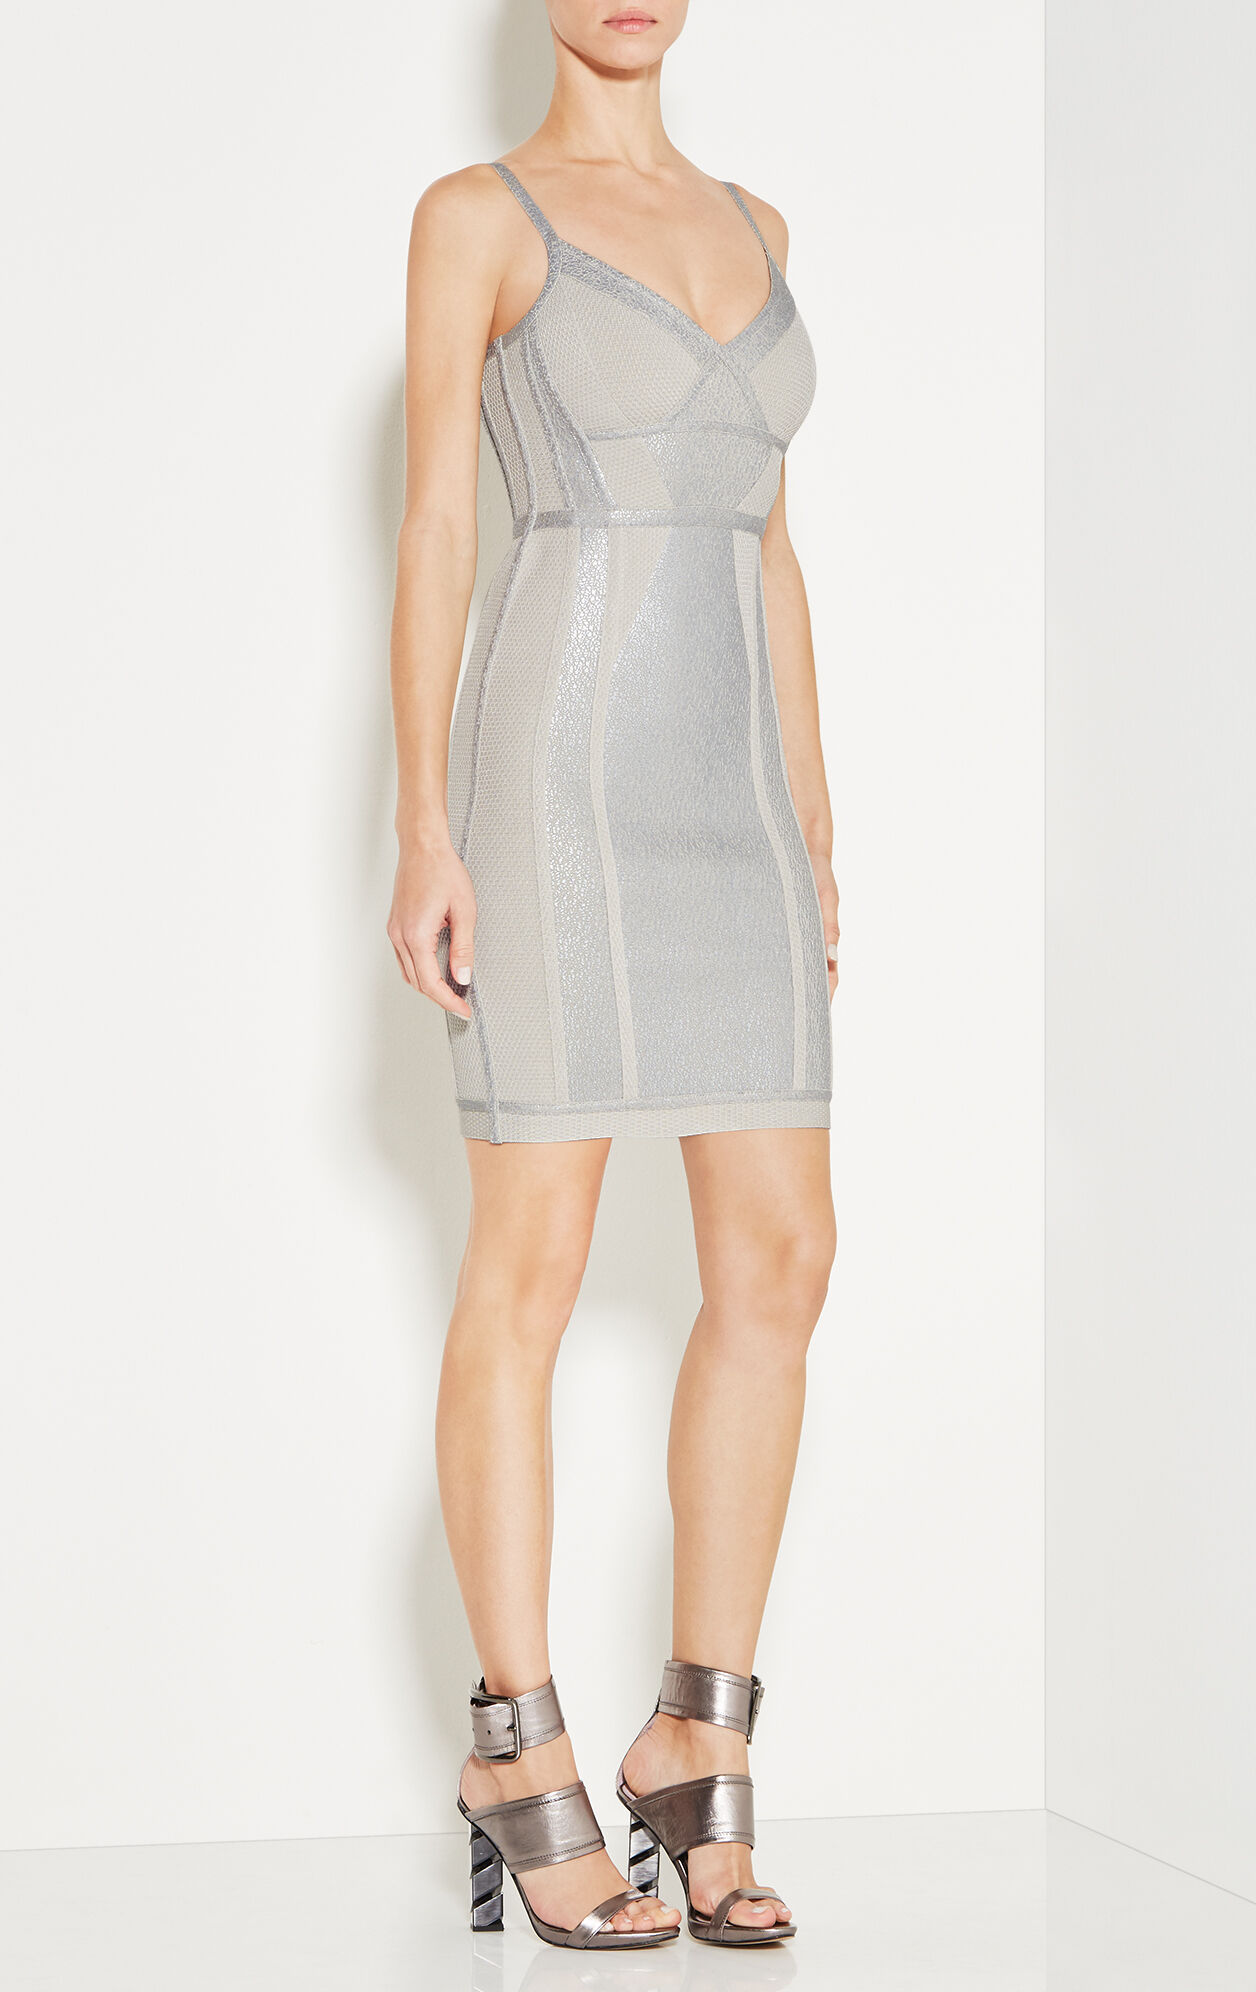 Jener Crackled Metallic Foil Dress